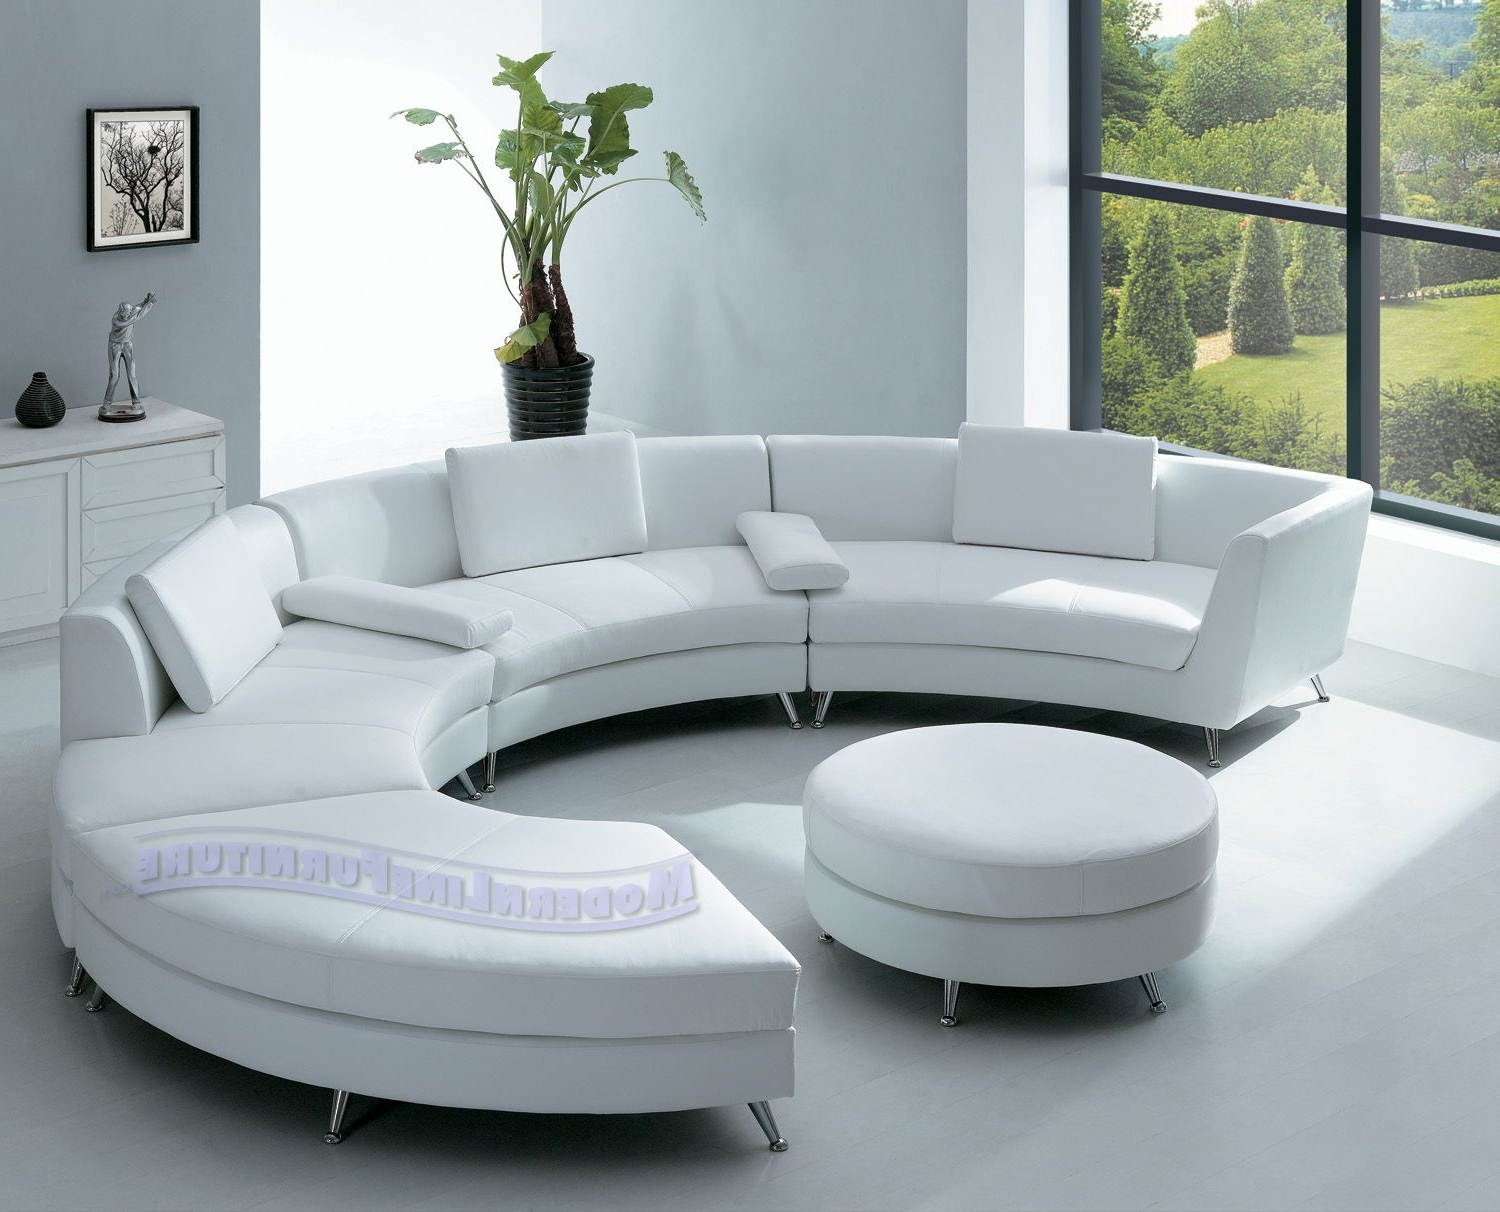 Most Current Room Furniture With Elegant Half Circle Sofa Home Interior Designs Regarding Circular Sofa Chairs (View 13 of 20)